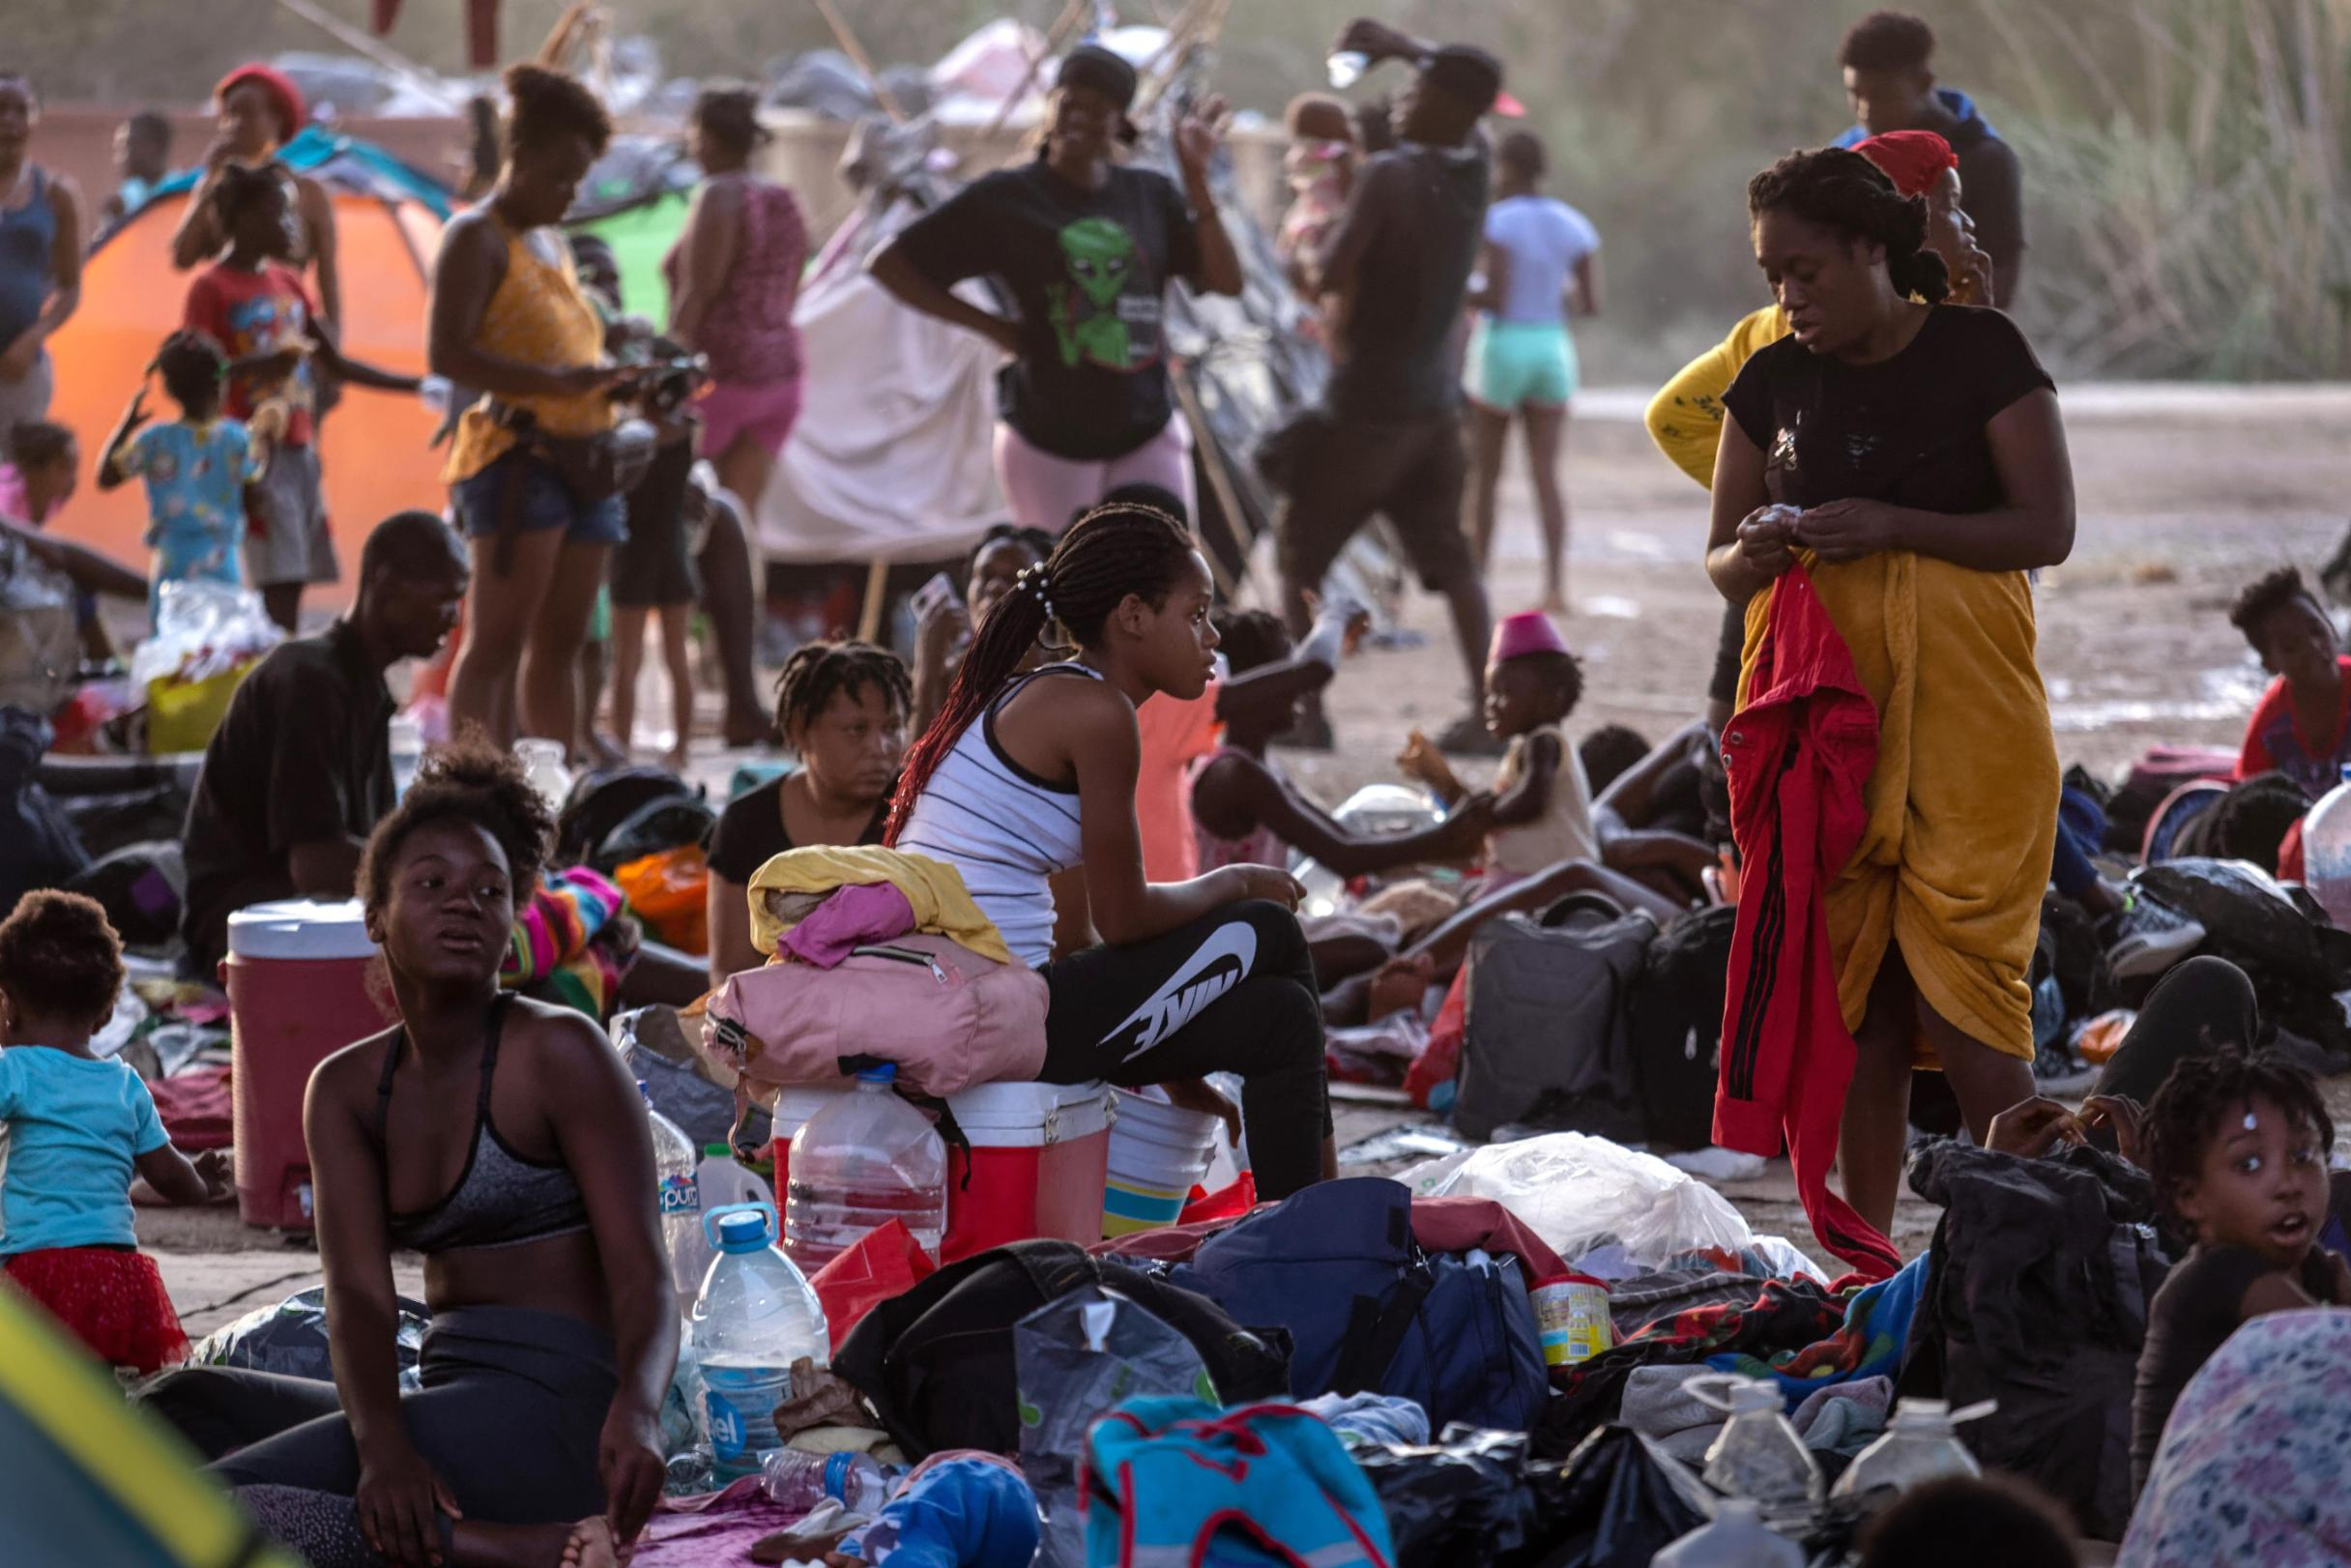 Only 225 Haitians still in Del Rio; 1,800 being processed in El Paso 6